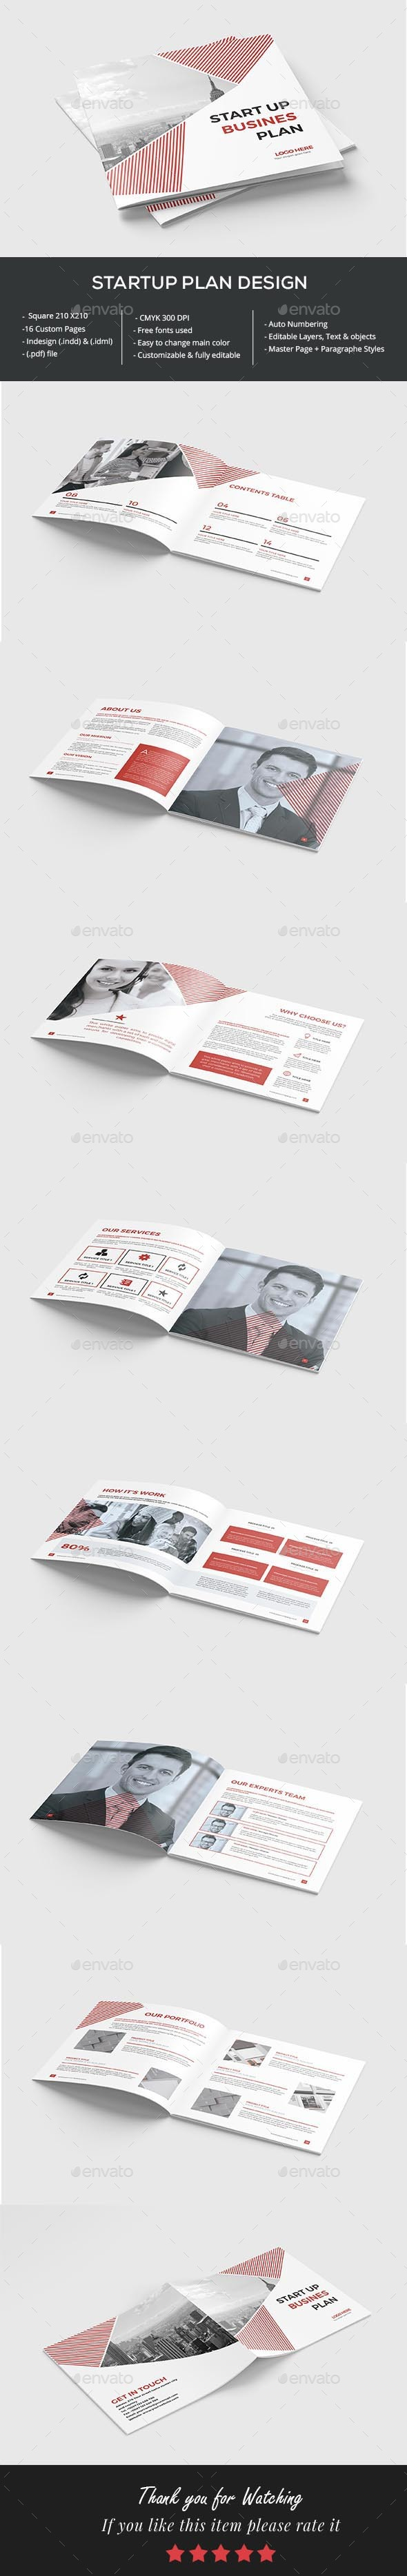 Square Startup Business Plan - Brochures Print Templates